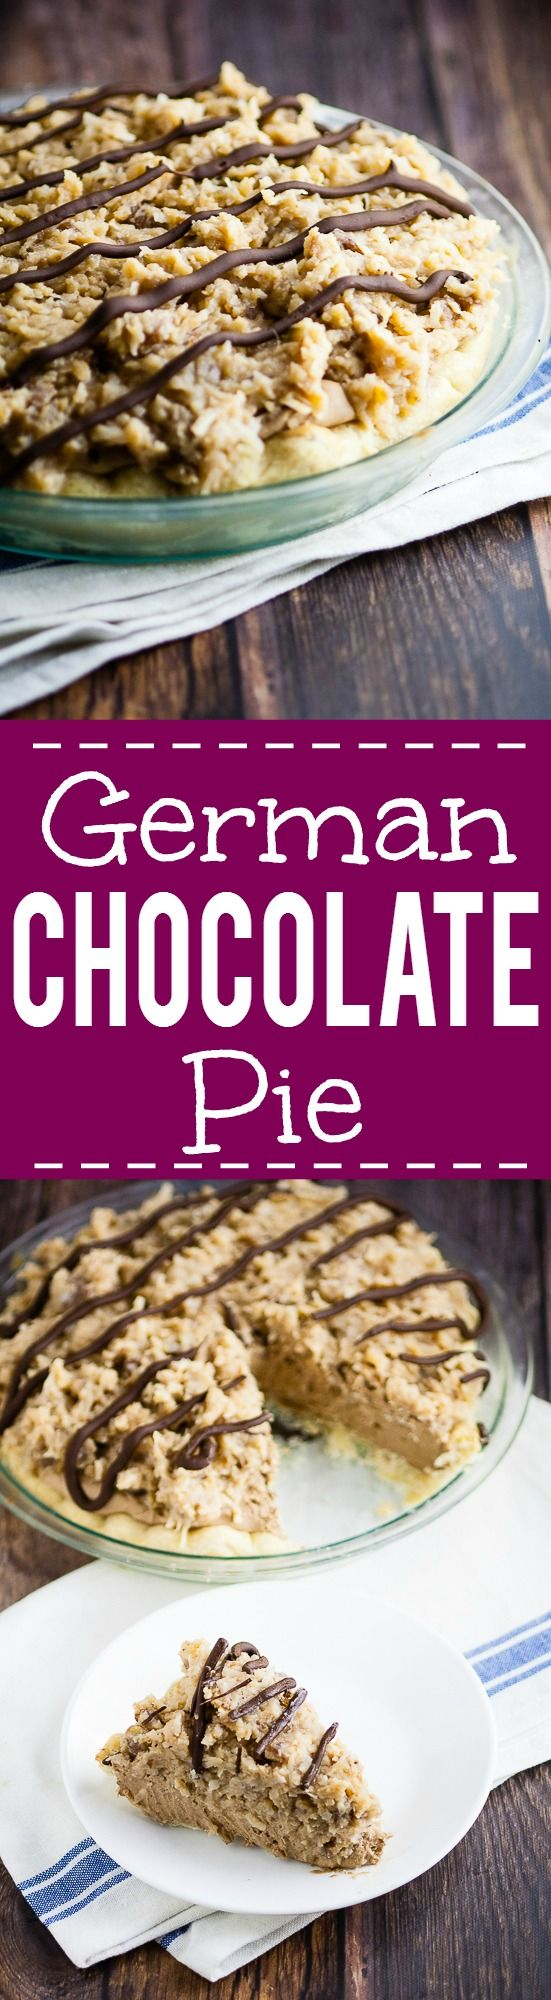 German Chocolate Pie recipe combines a chocolate cream pie with German ...